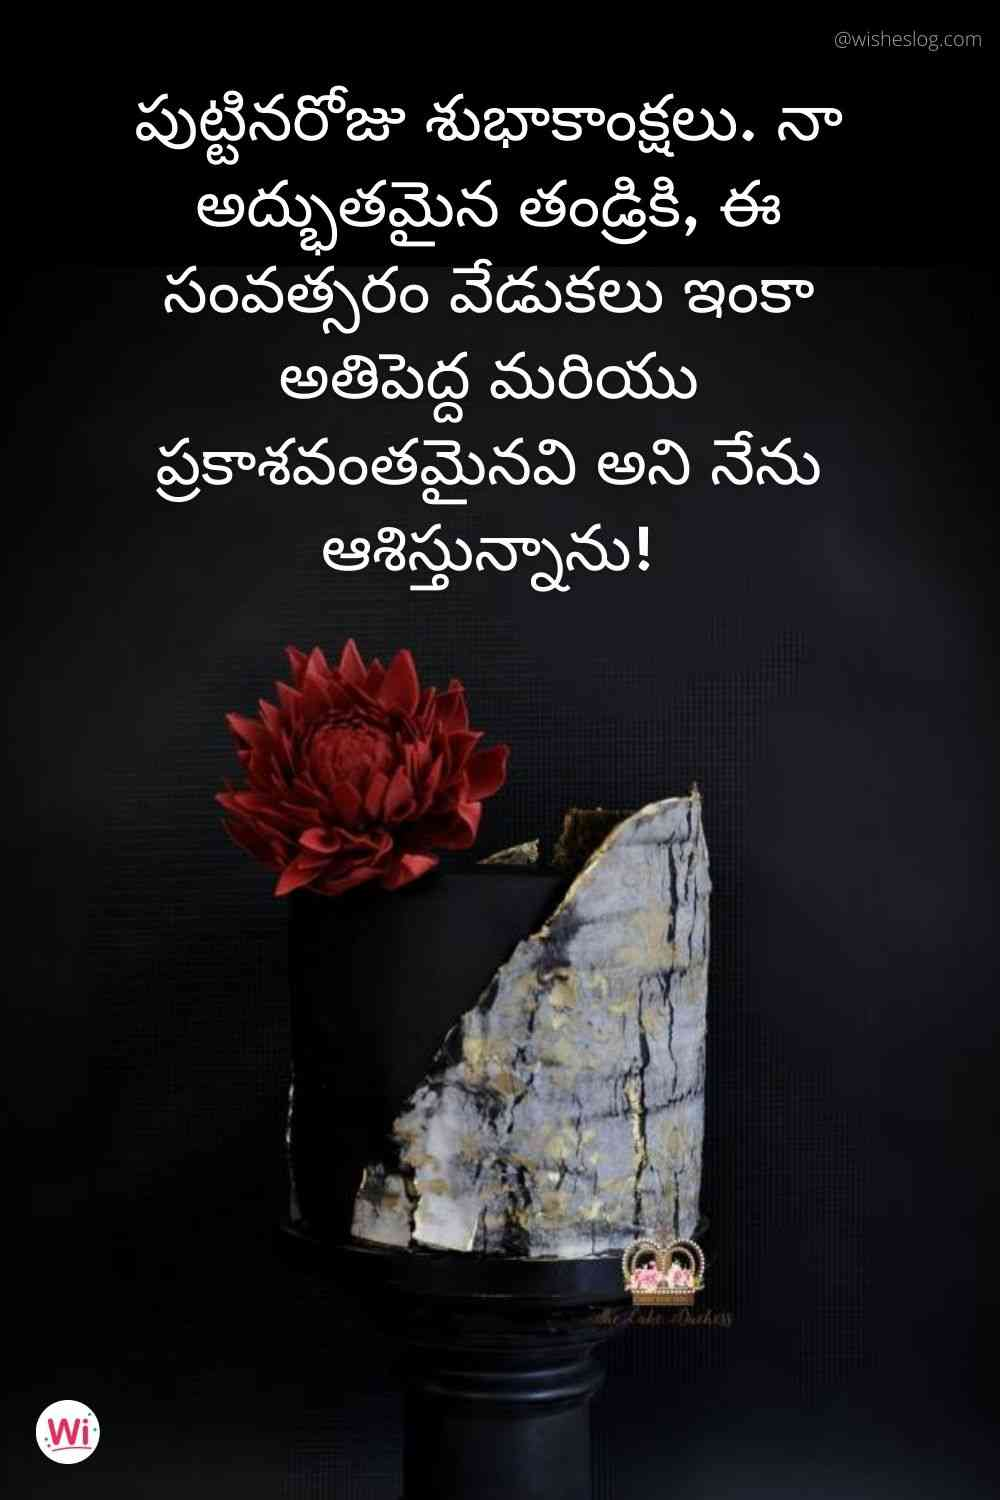 birthday wishes quotes in telugu for dad